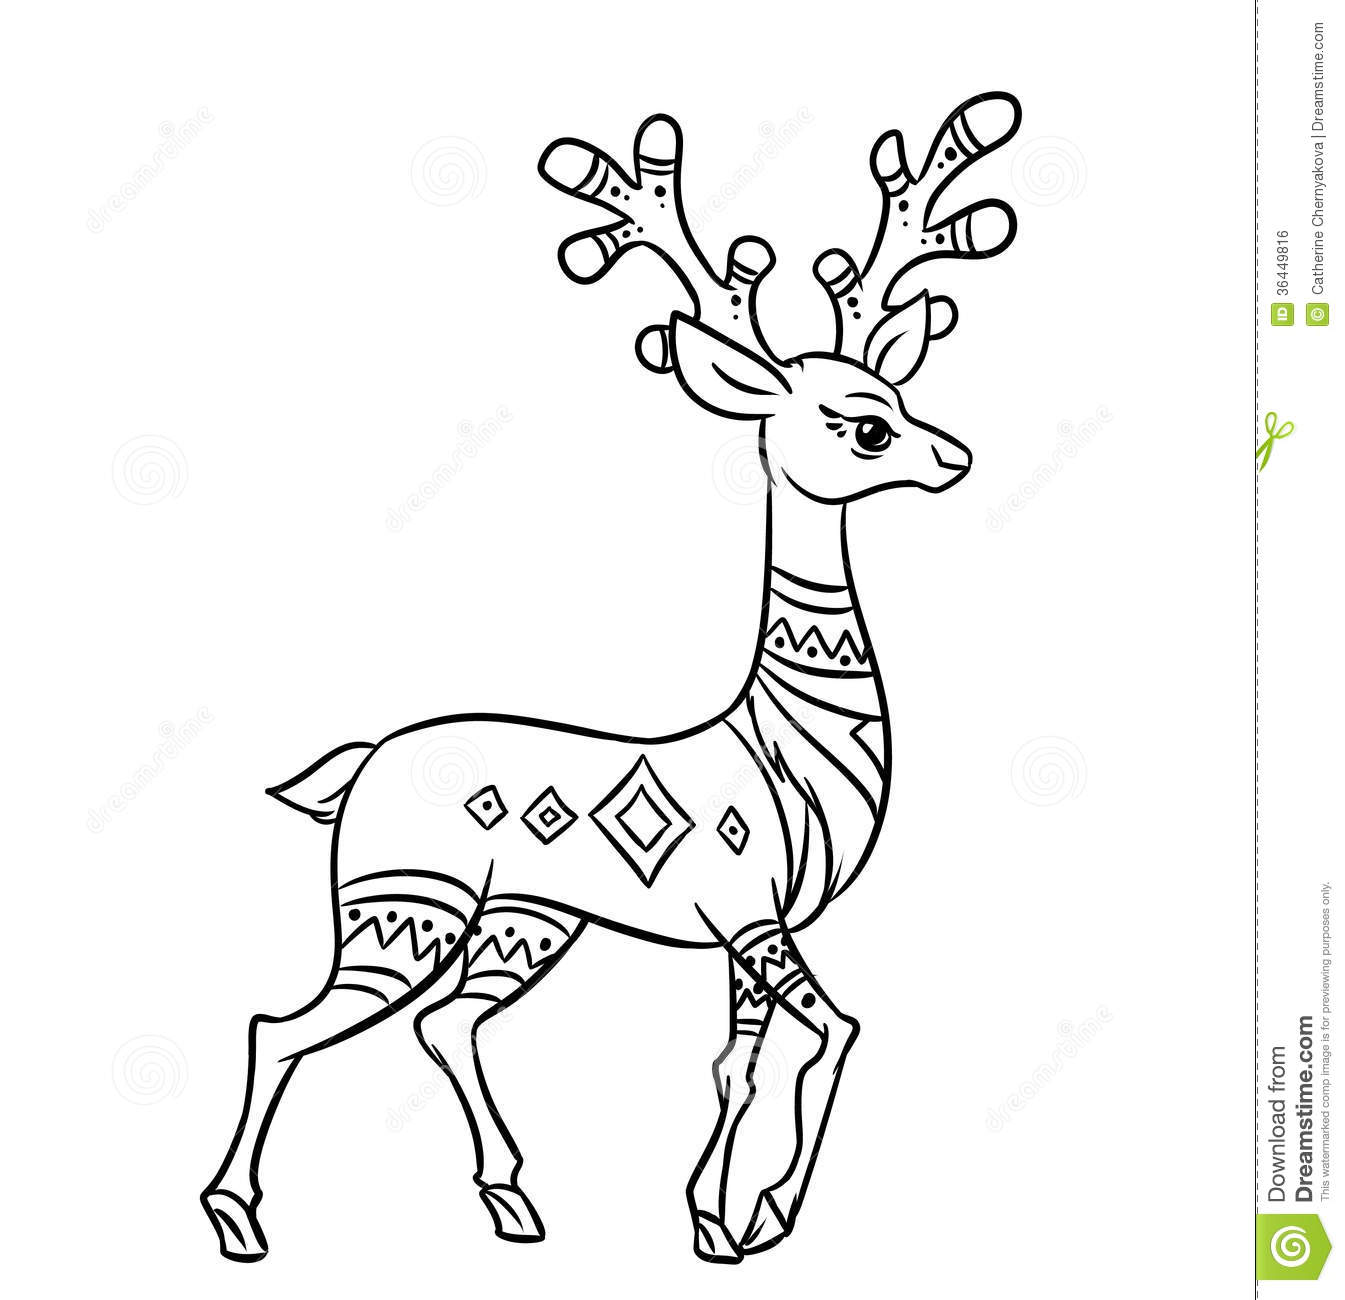 cartoon deer coloring pages - photo#23